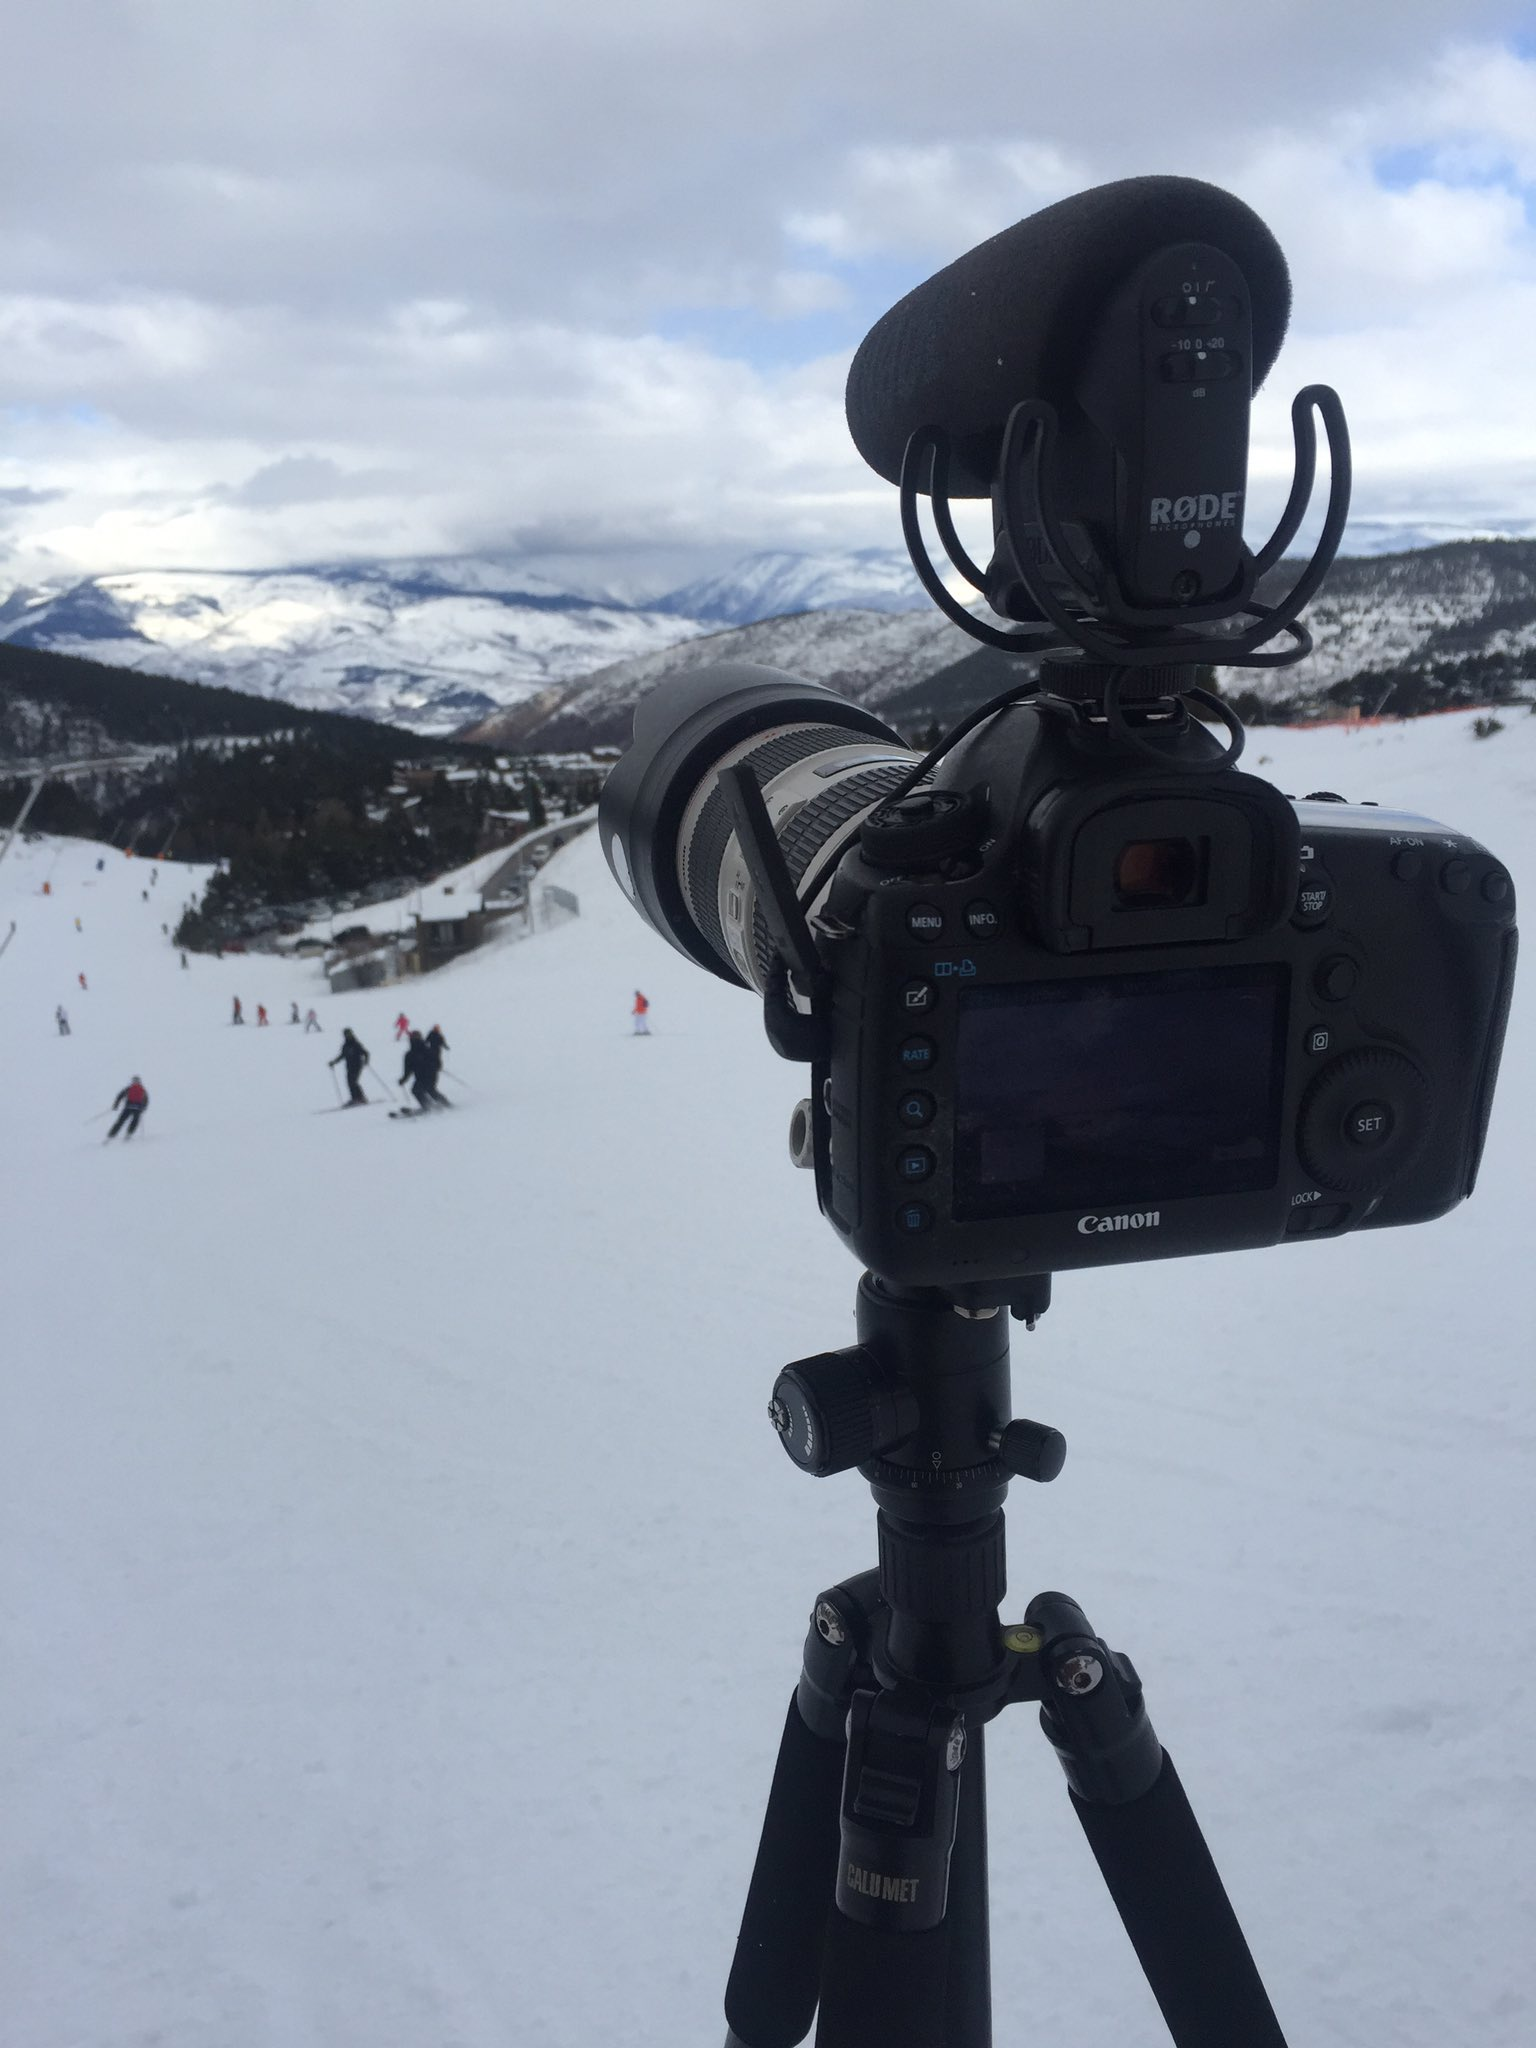 Shooting some awesome cloud timelapses at @SnowLaMolina in @VisitCostaBrava Pyrenees #inPyrenees #VisitPyrenees @TravelDudes https://t.co/7YGJFcQJlf